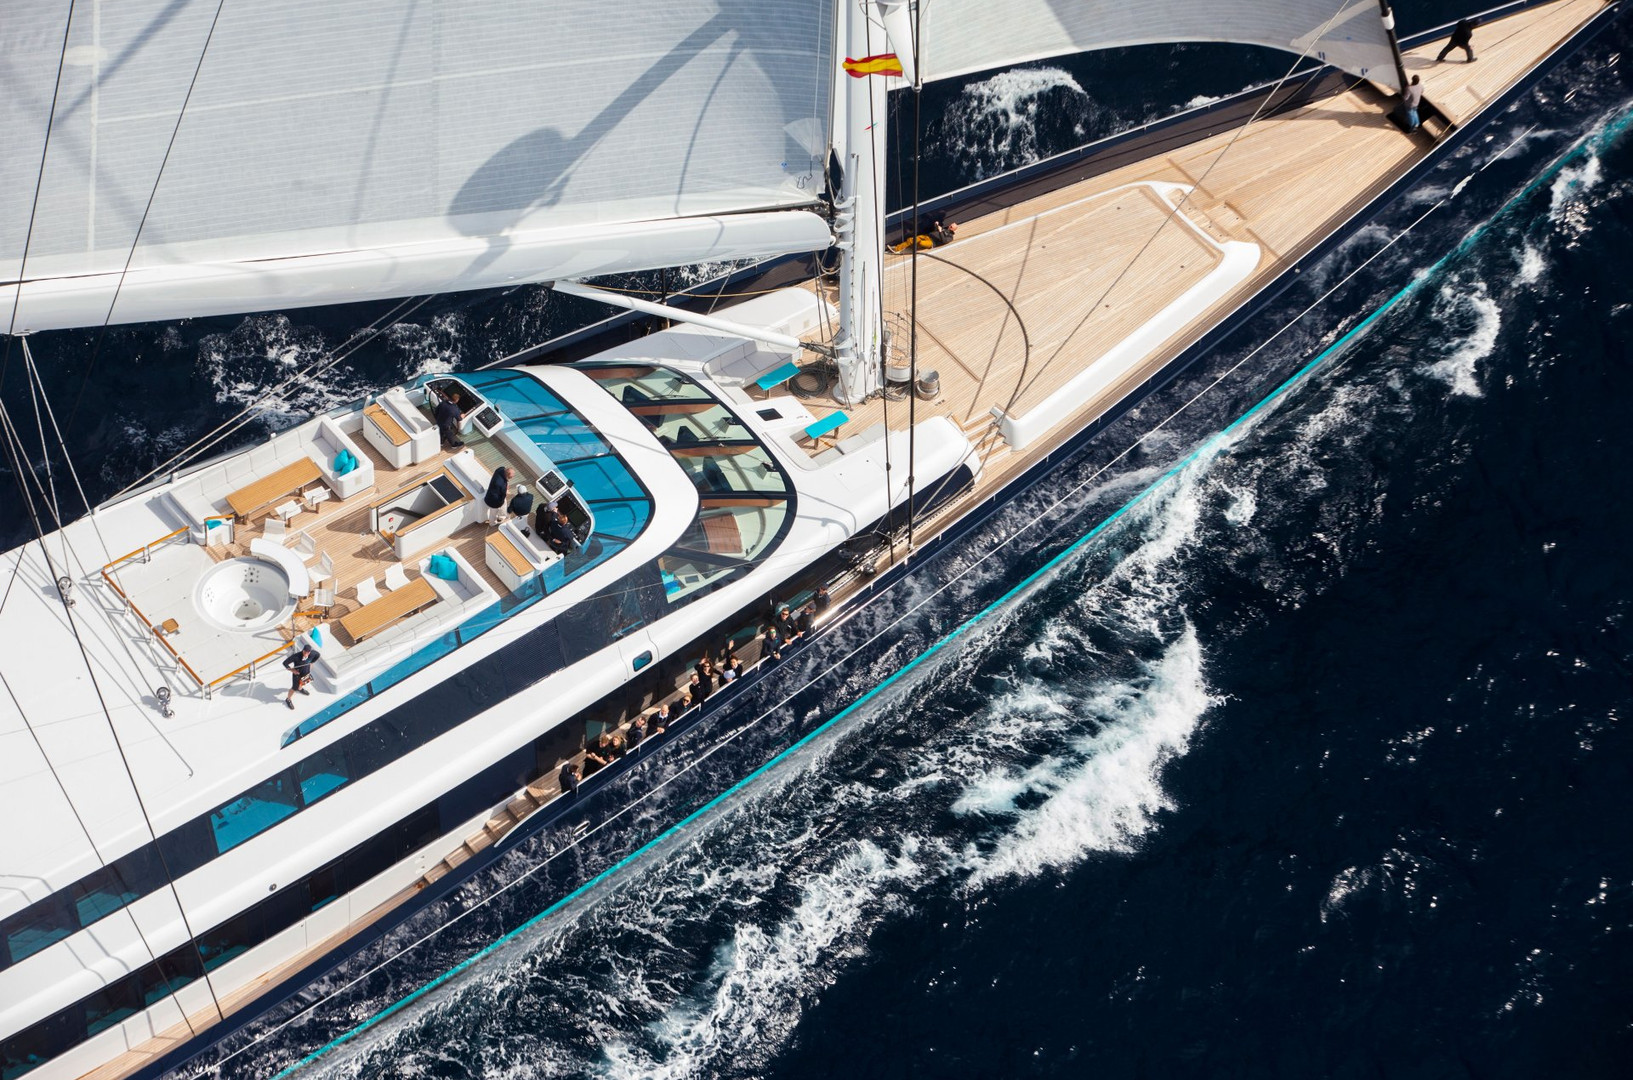 Sailing Yacht AQUIJO - 86m mega yacht sailing on charter in the Med